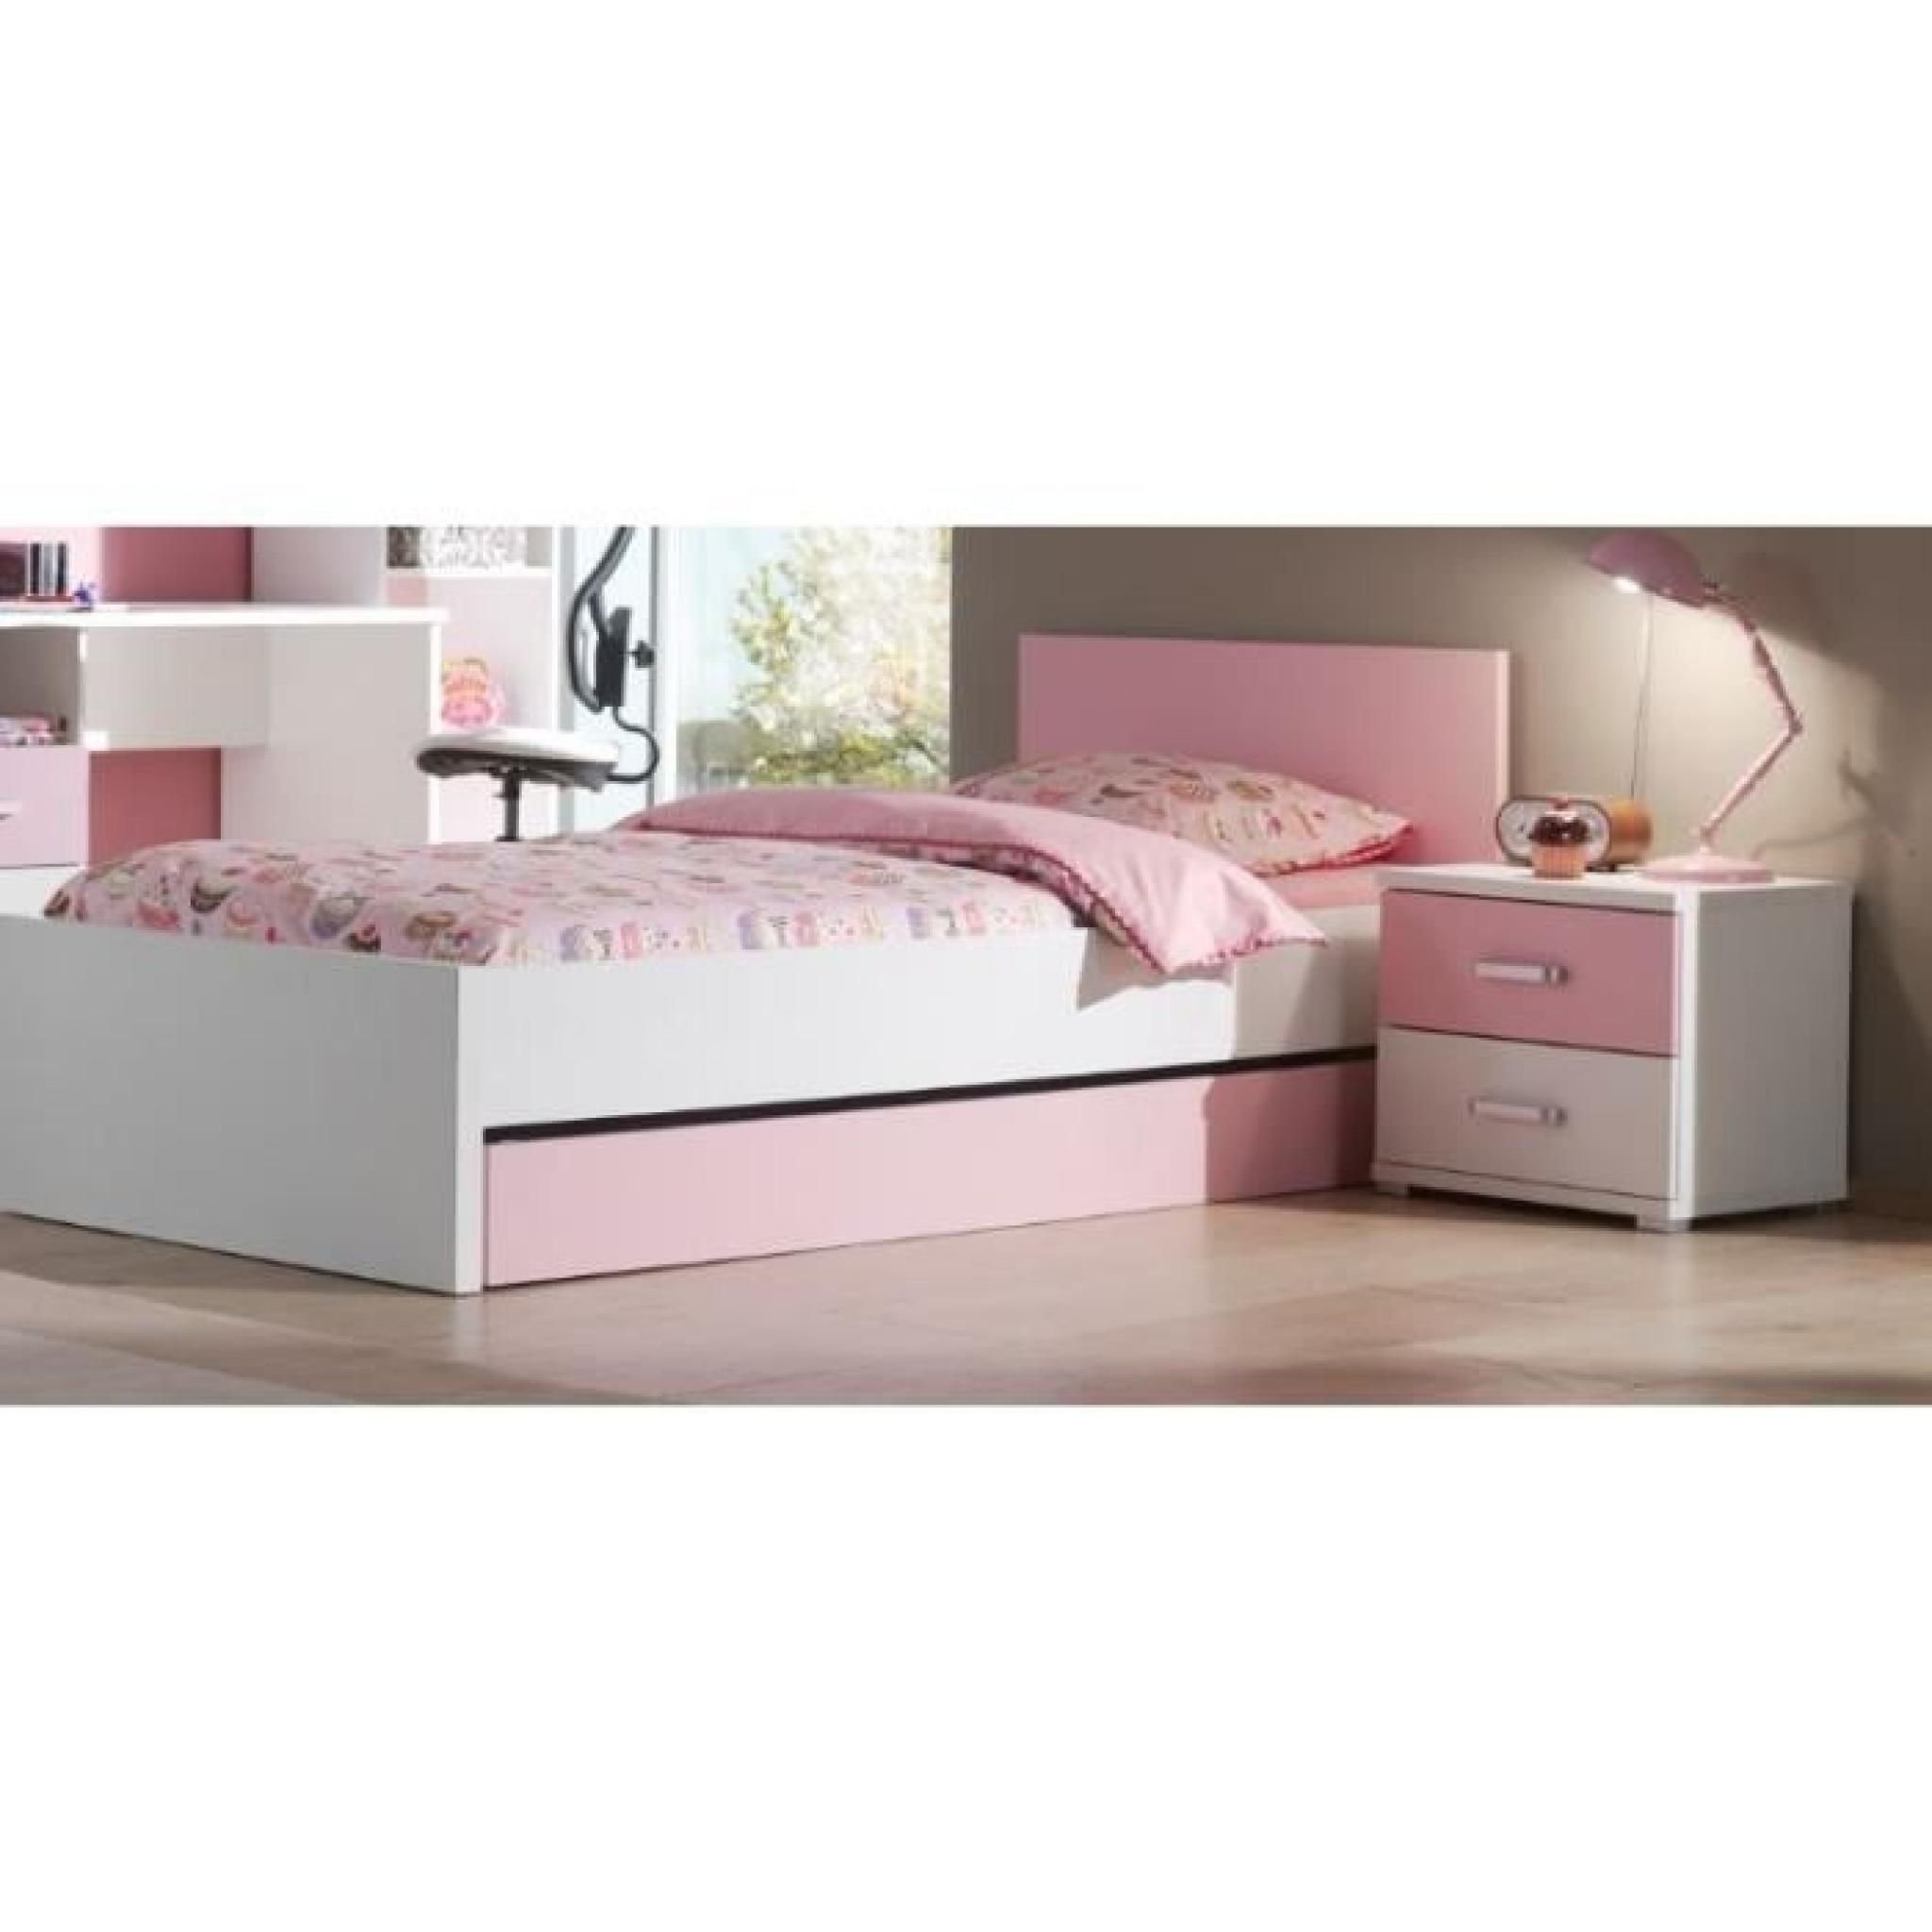 valentine lit enfant lit gigogne chevet blanc rose achat. Black Bedroom Furniture Sets. Home Design Ideas